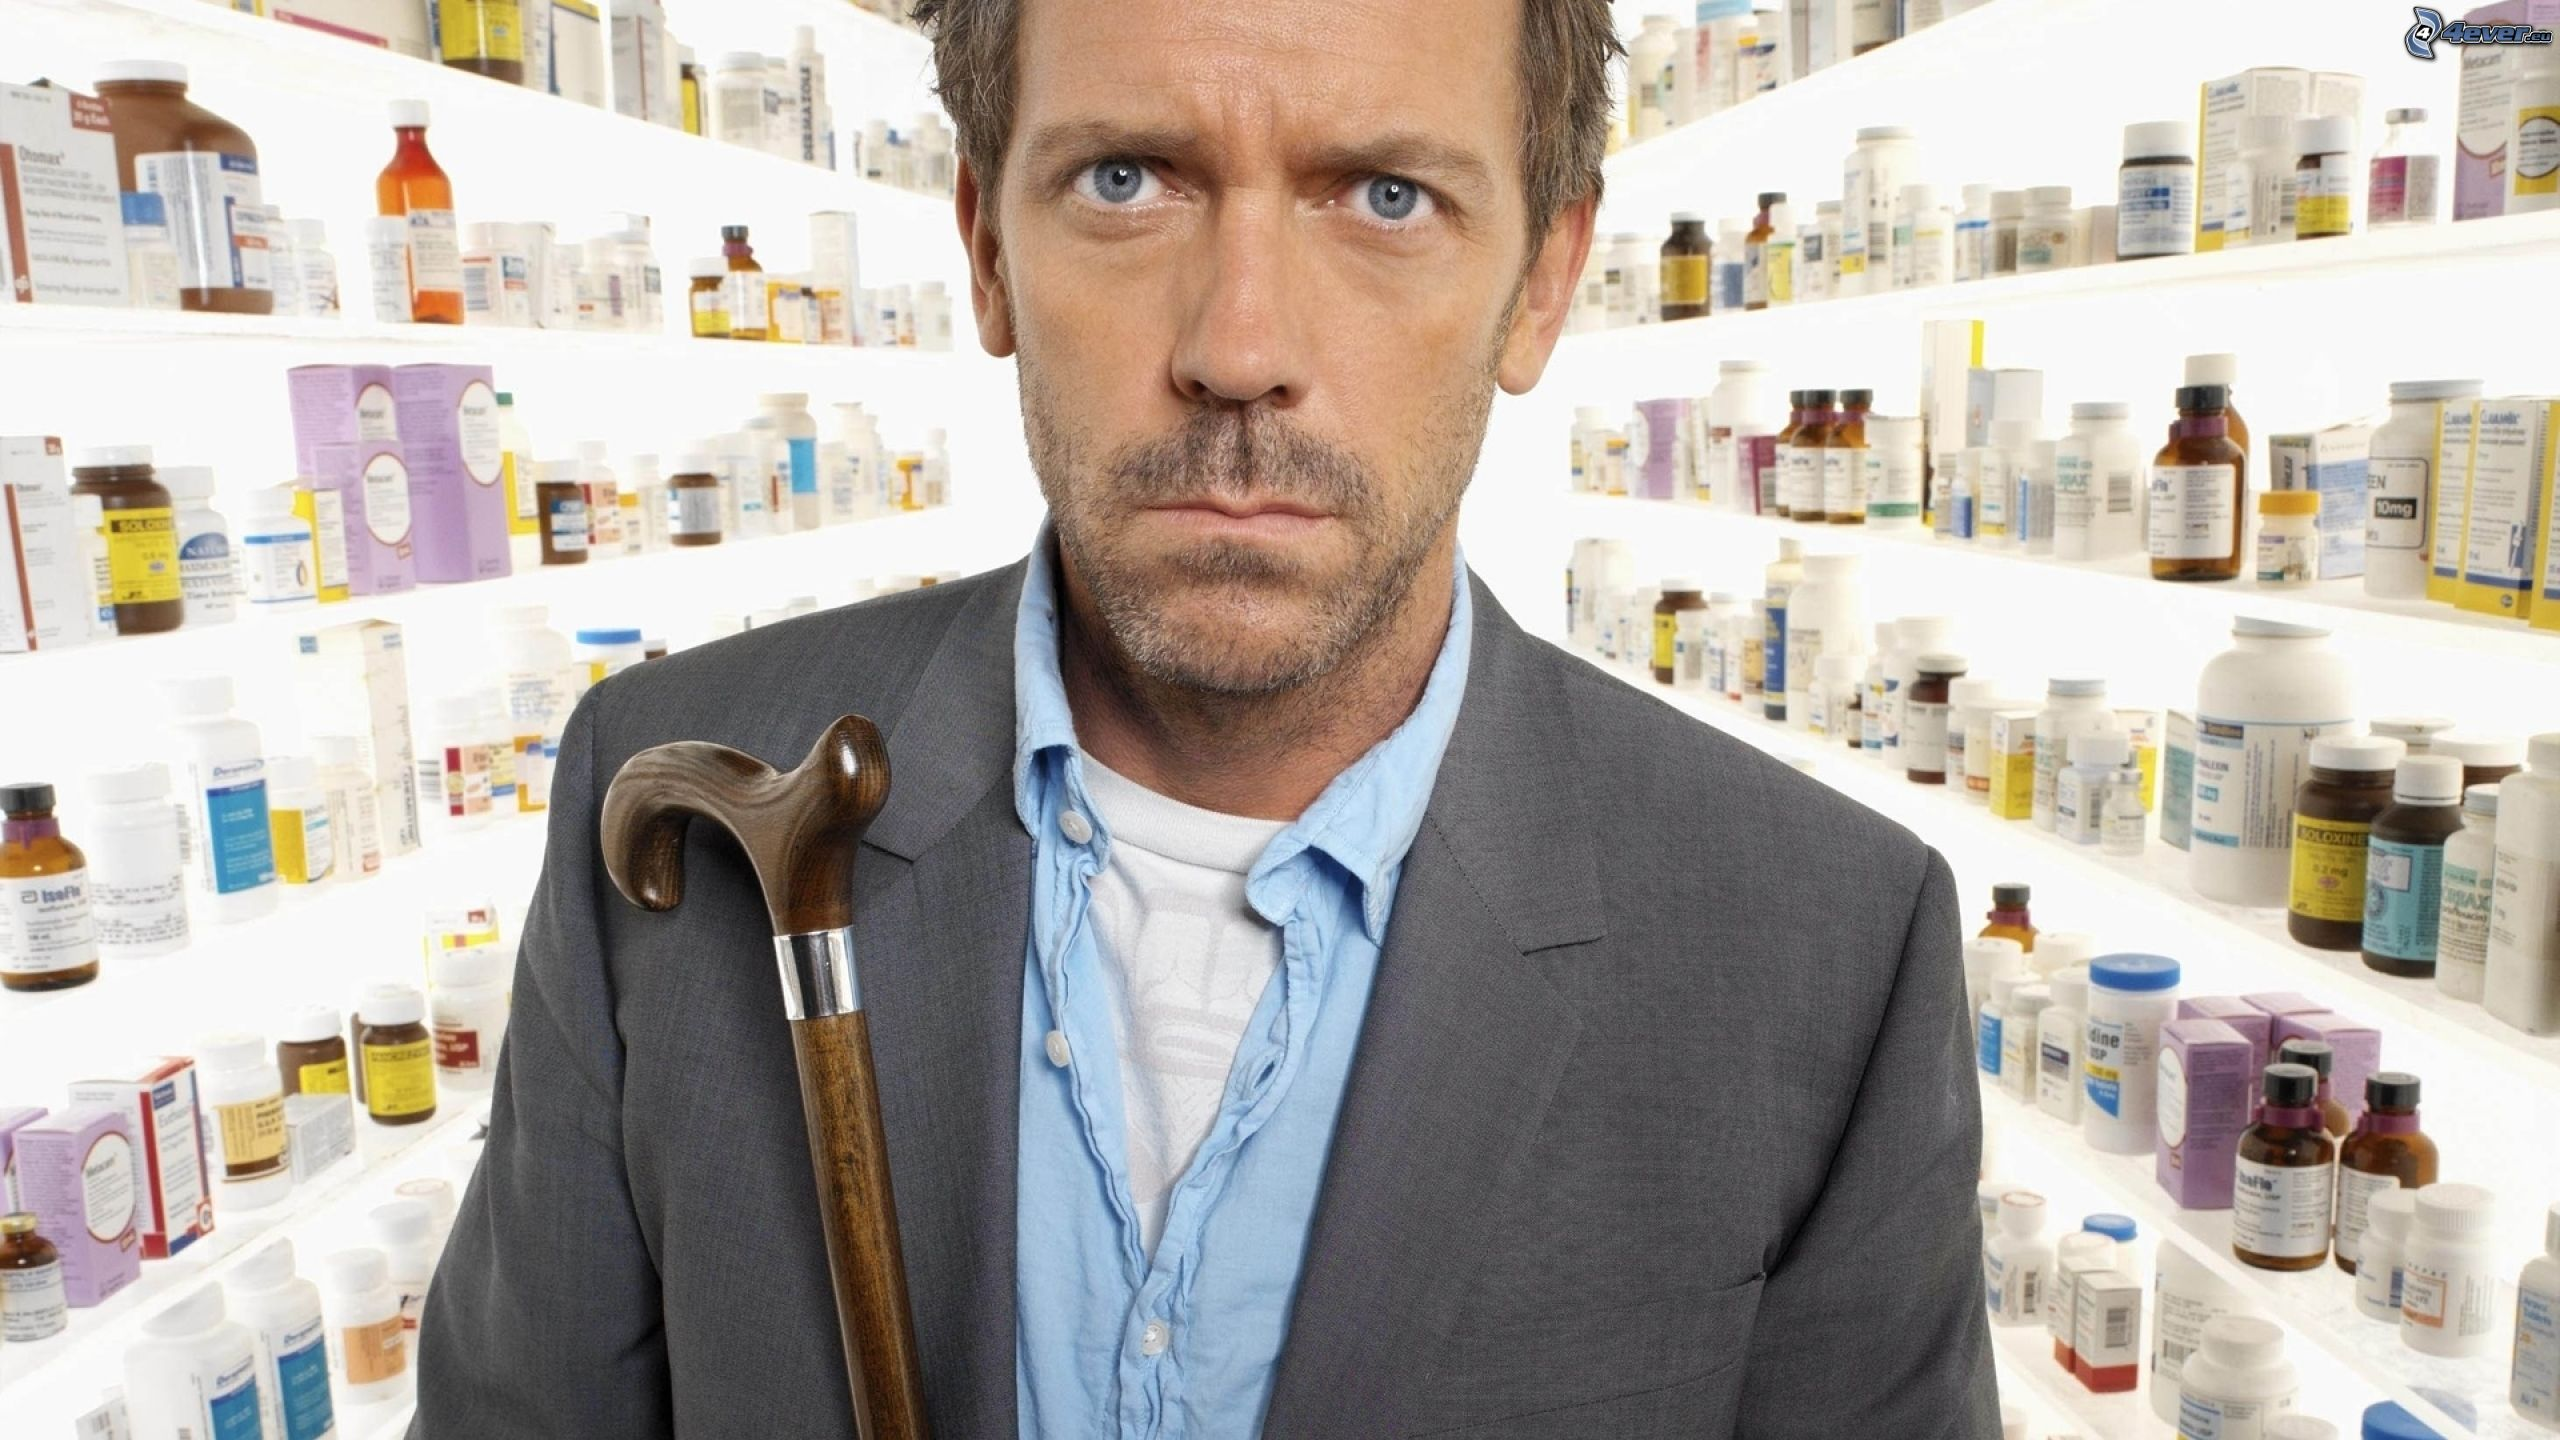 download wallpaper dr house - photo #36